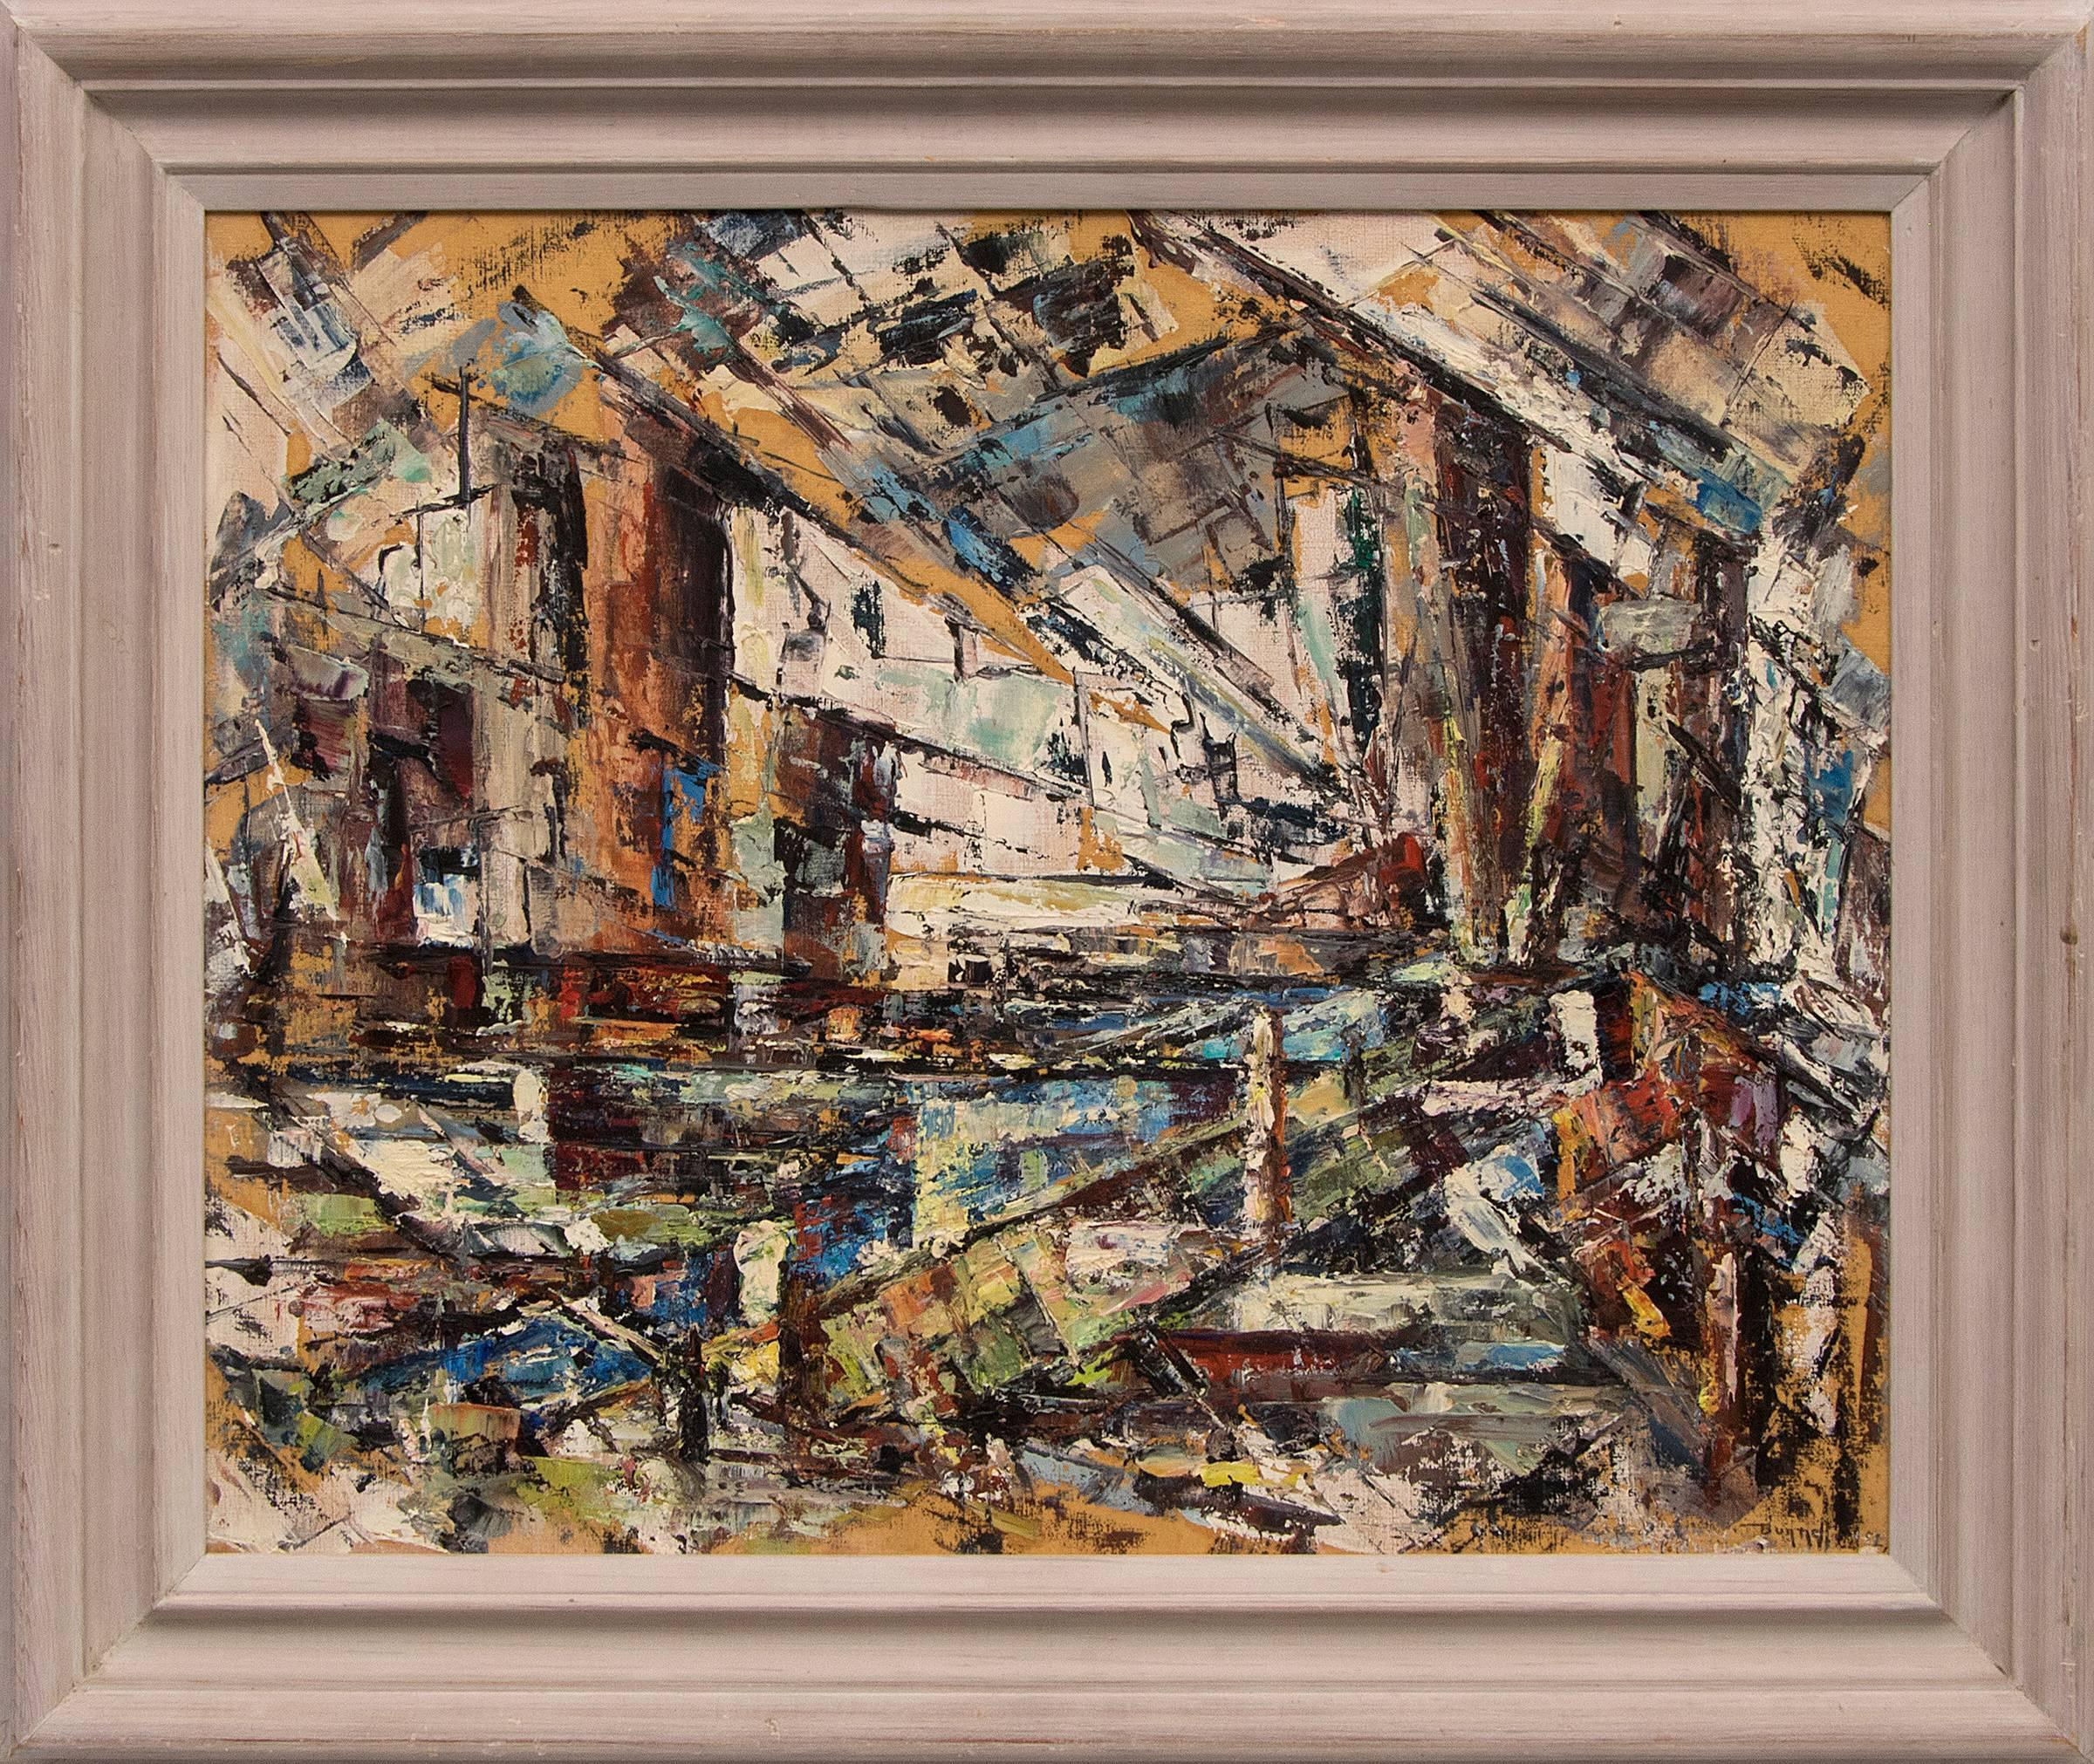 Untitled (Colorado Mining District - Abstract Expressionist Painting)